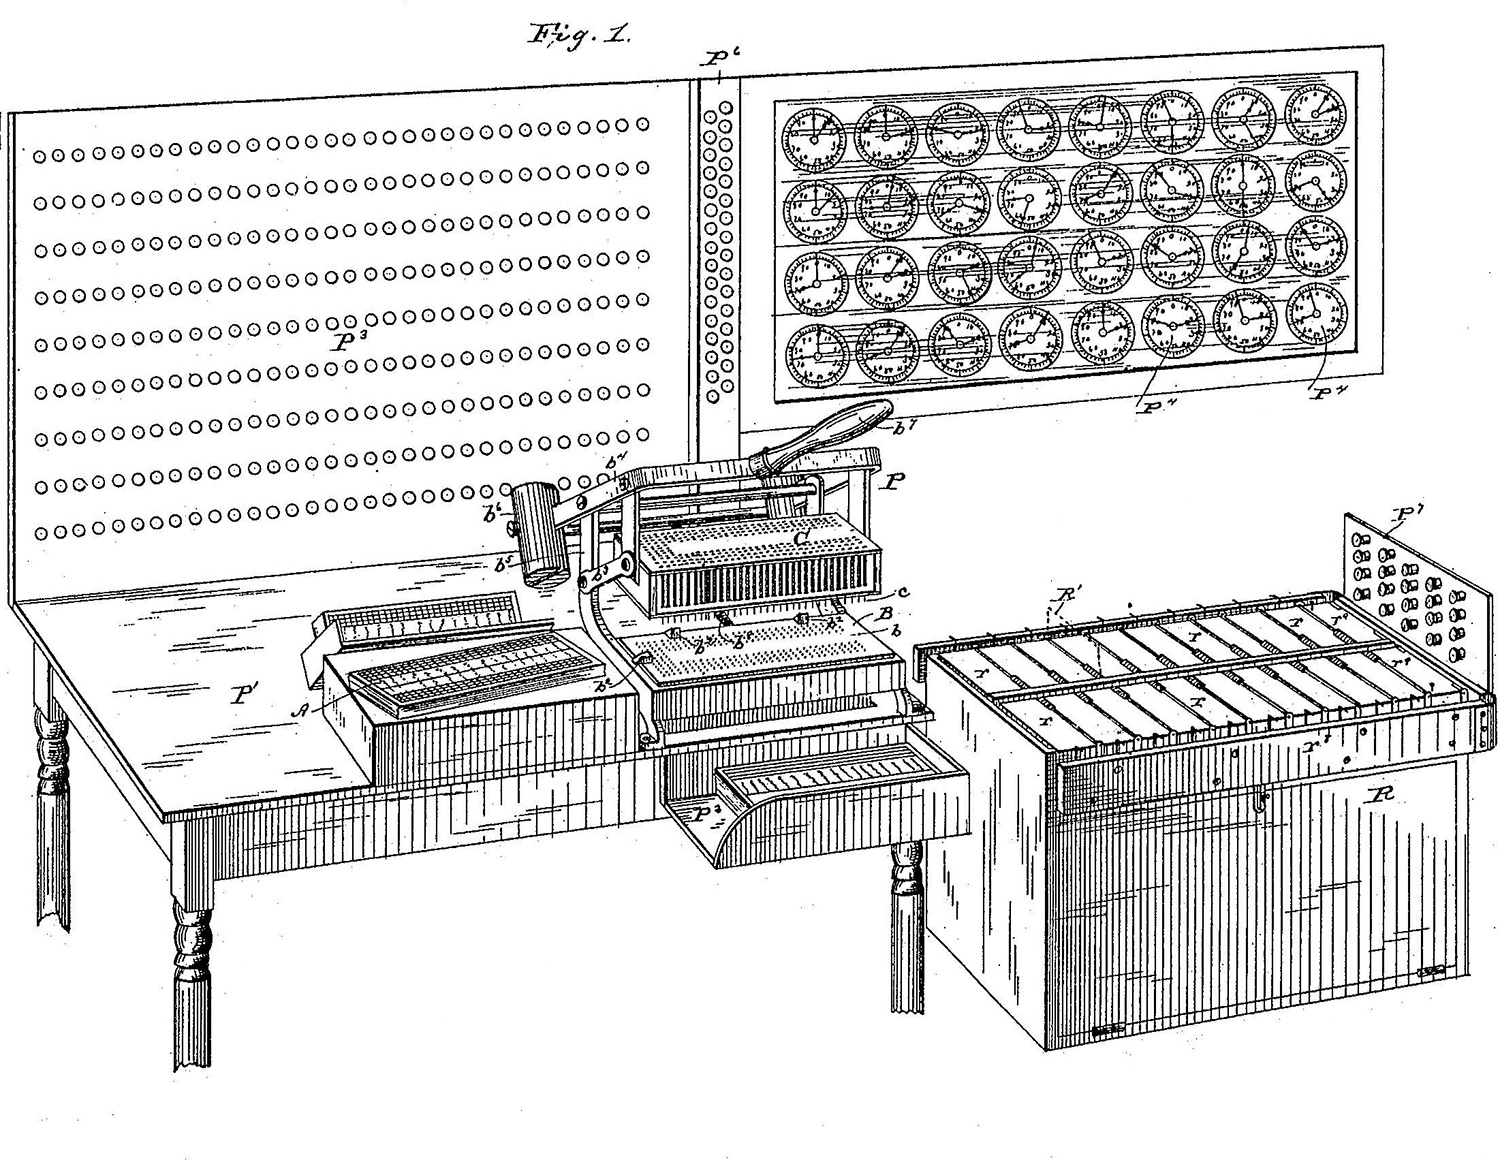 Black and white patent drawing of the Hollerith card puncher, tabulator, and sorting box